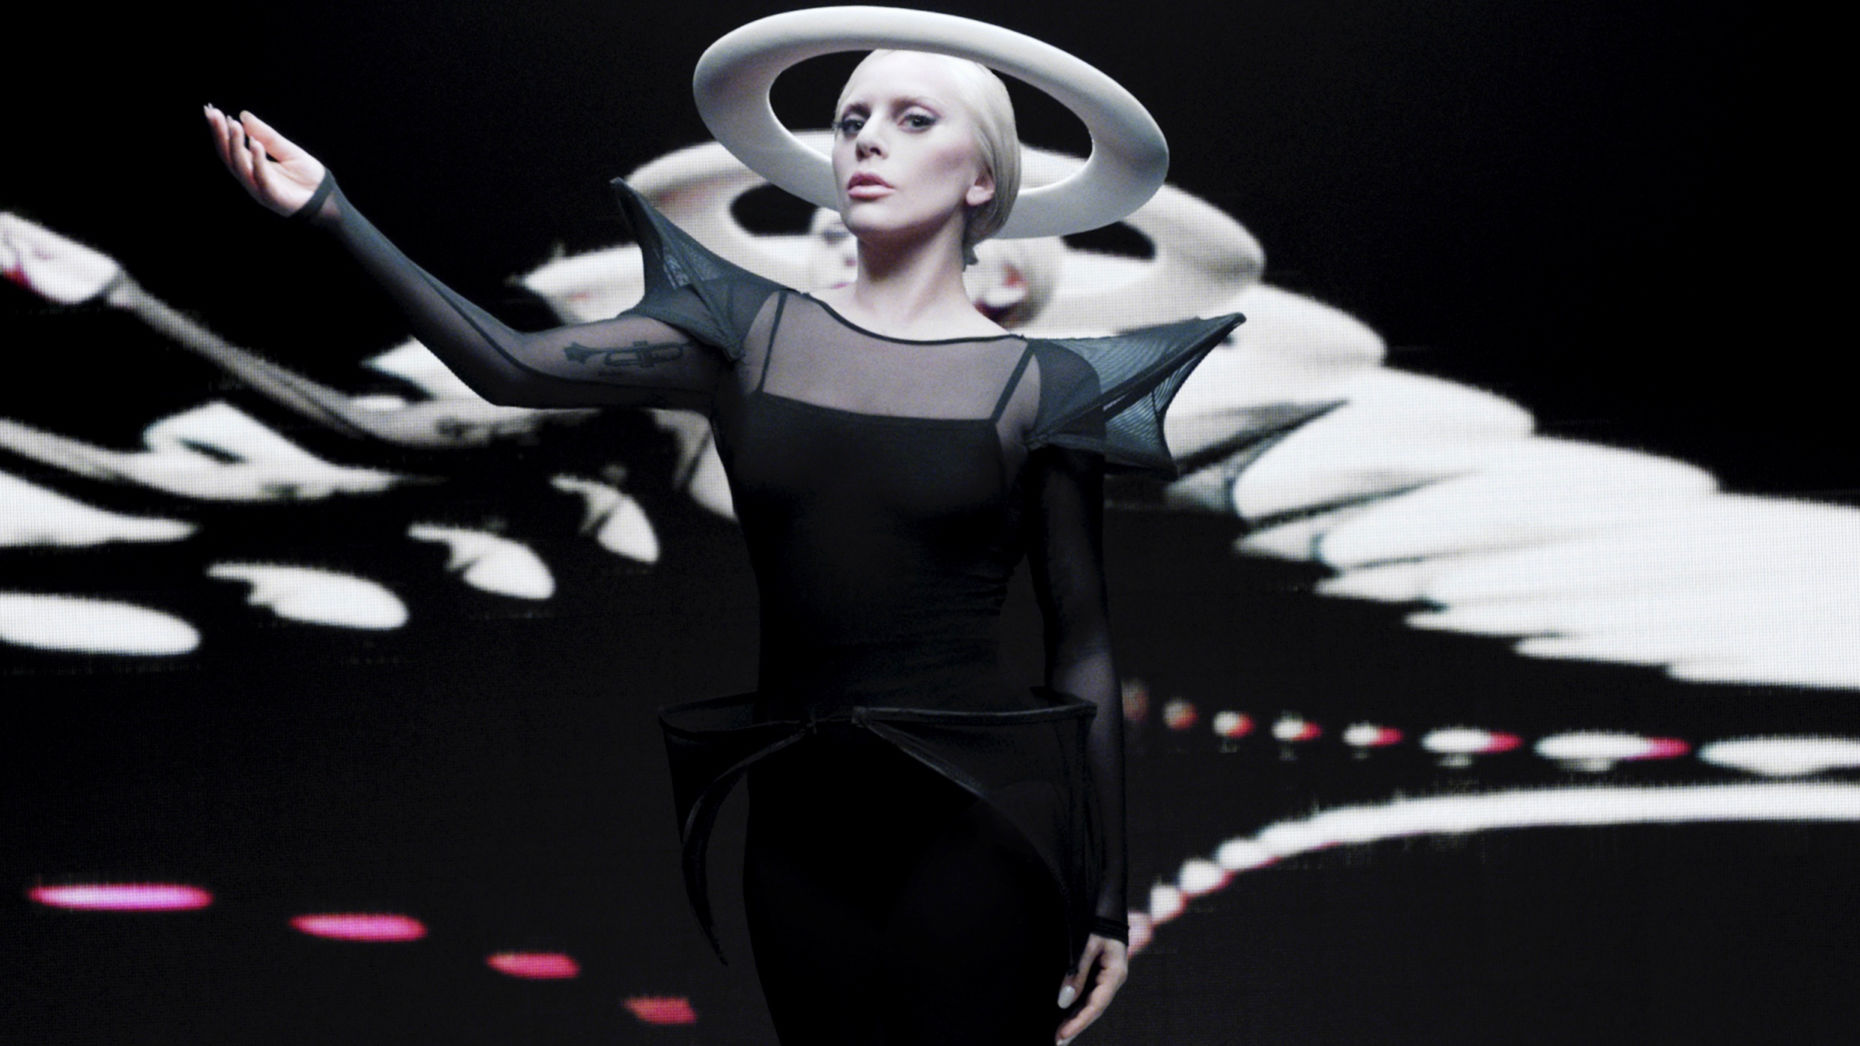 A publicity photo from Lady Gaga's collaboration with Intel. Photo by Intel